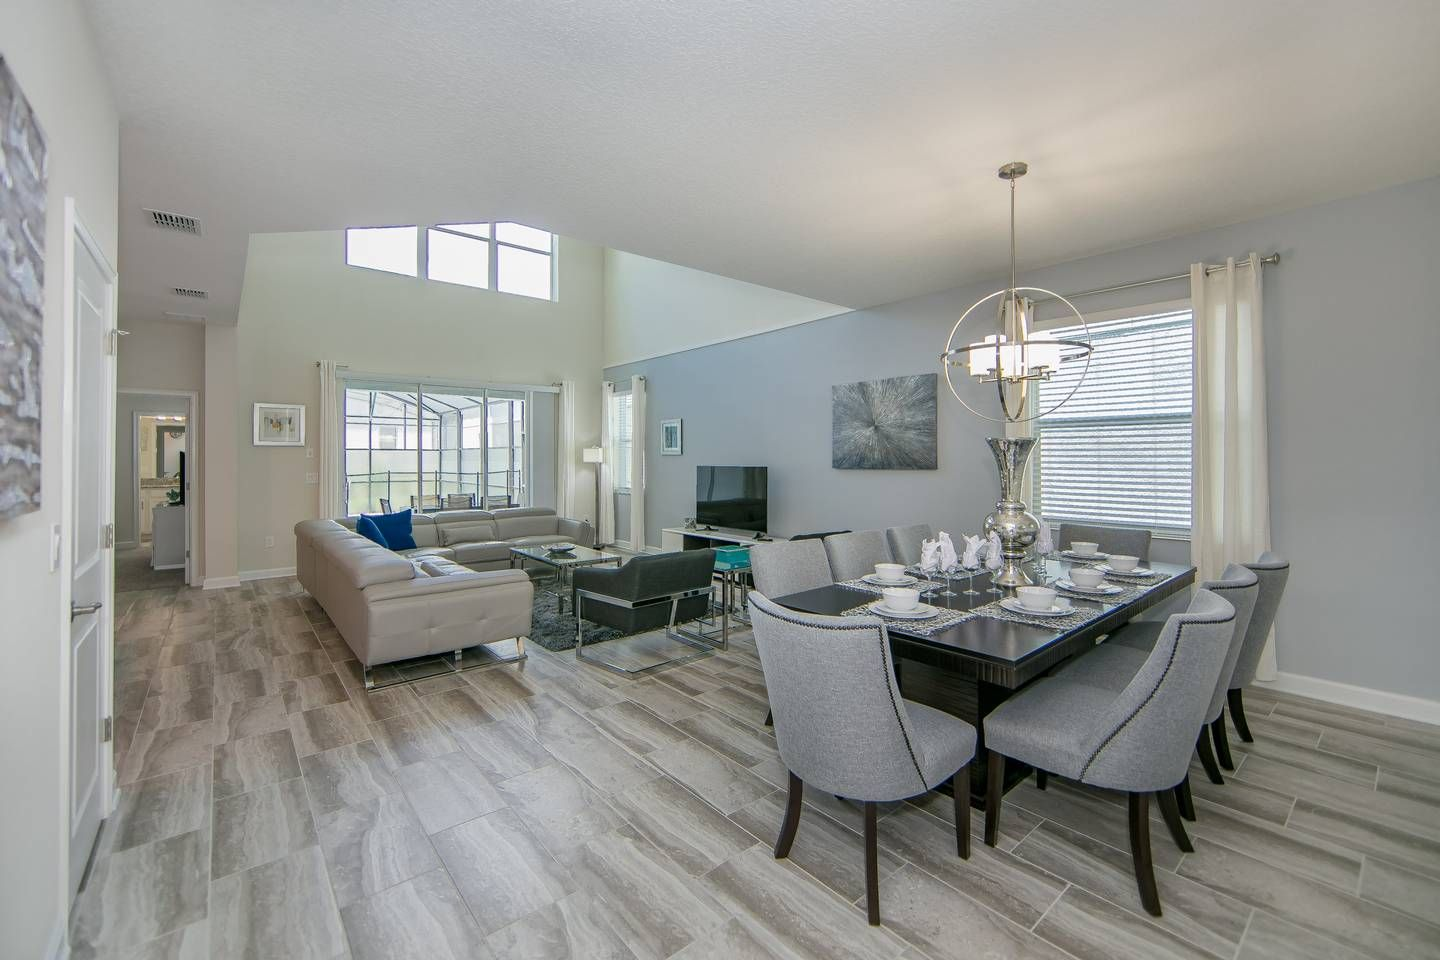 Feb 2021 20 Dreamy Airbnb Orlando Vacation Rentals Renting A House Family Vacation Ideas Kids Orlando Rentals